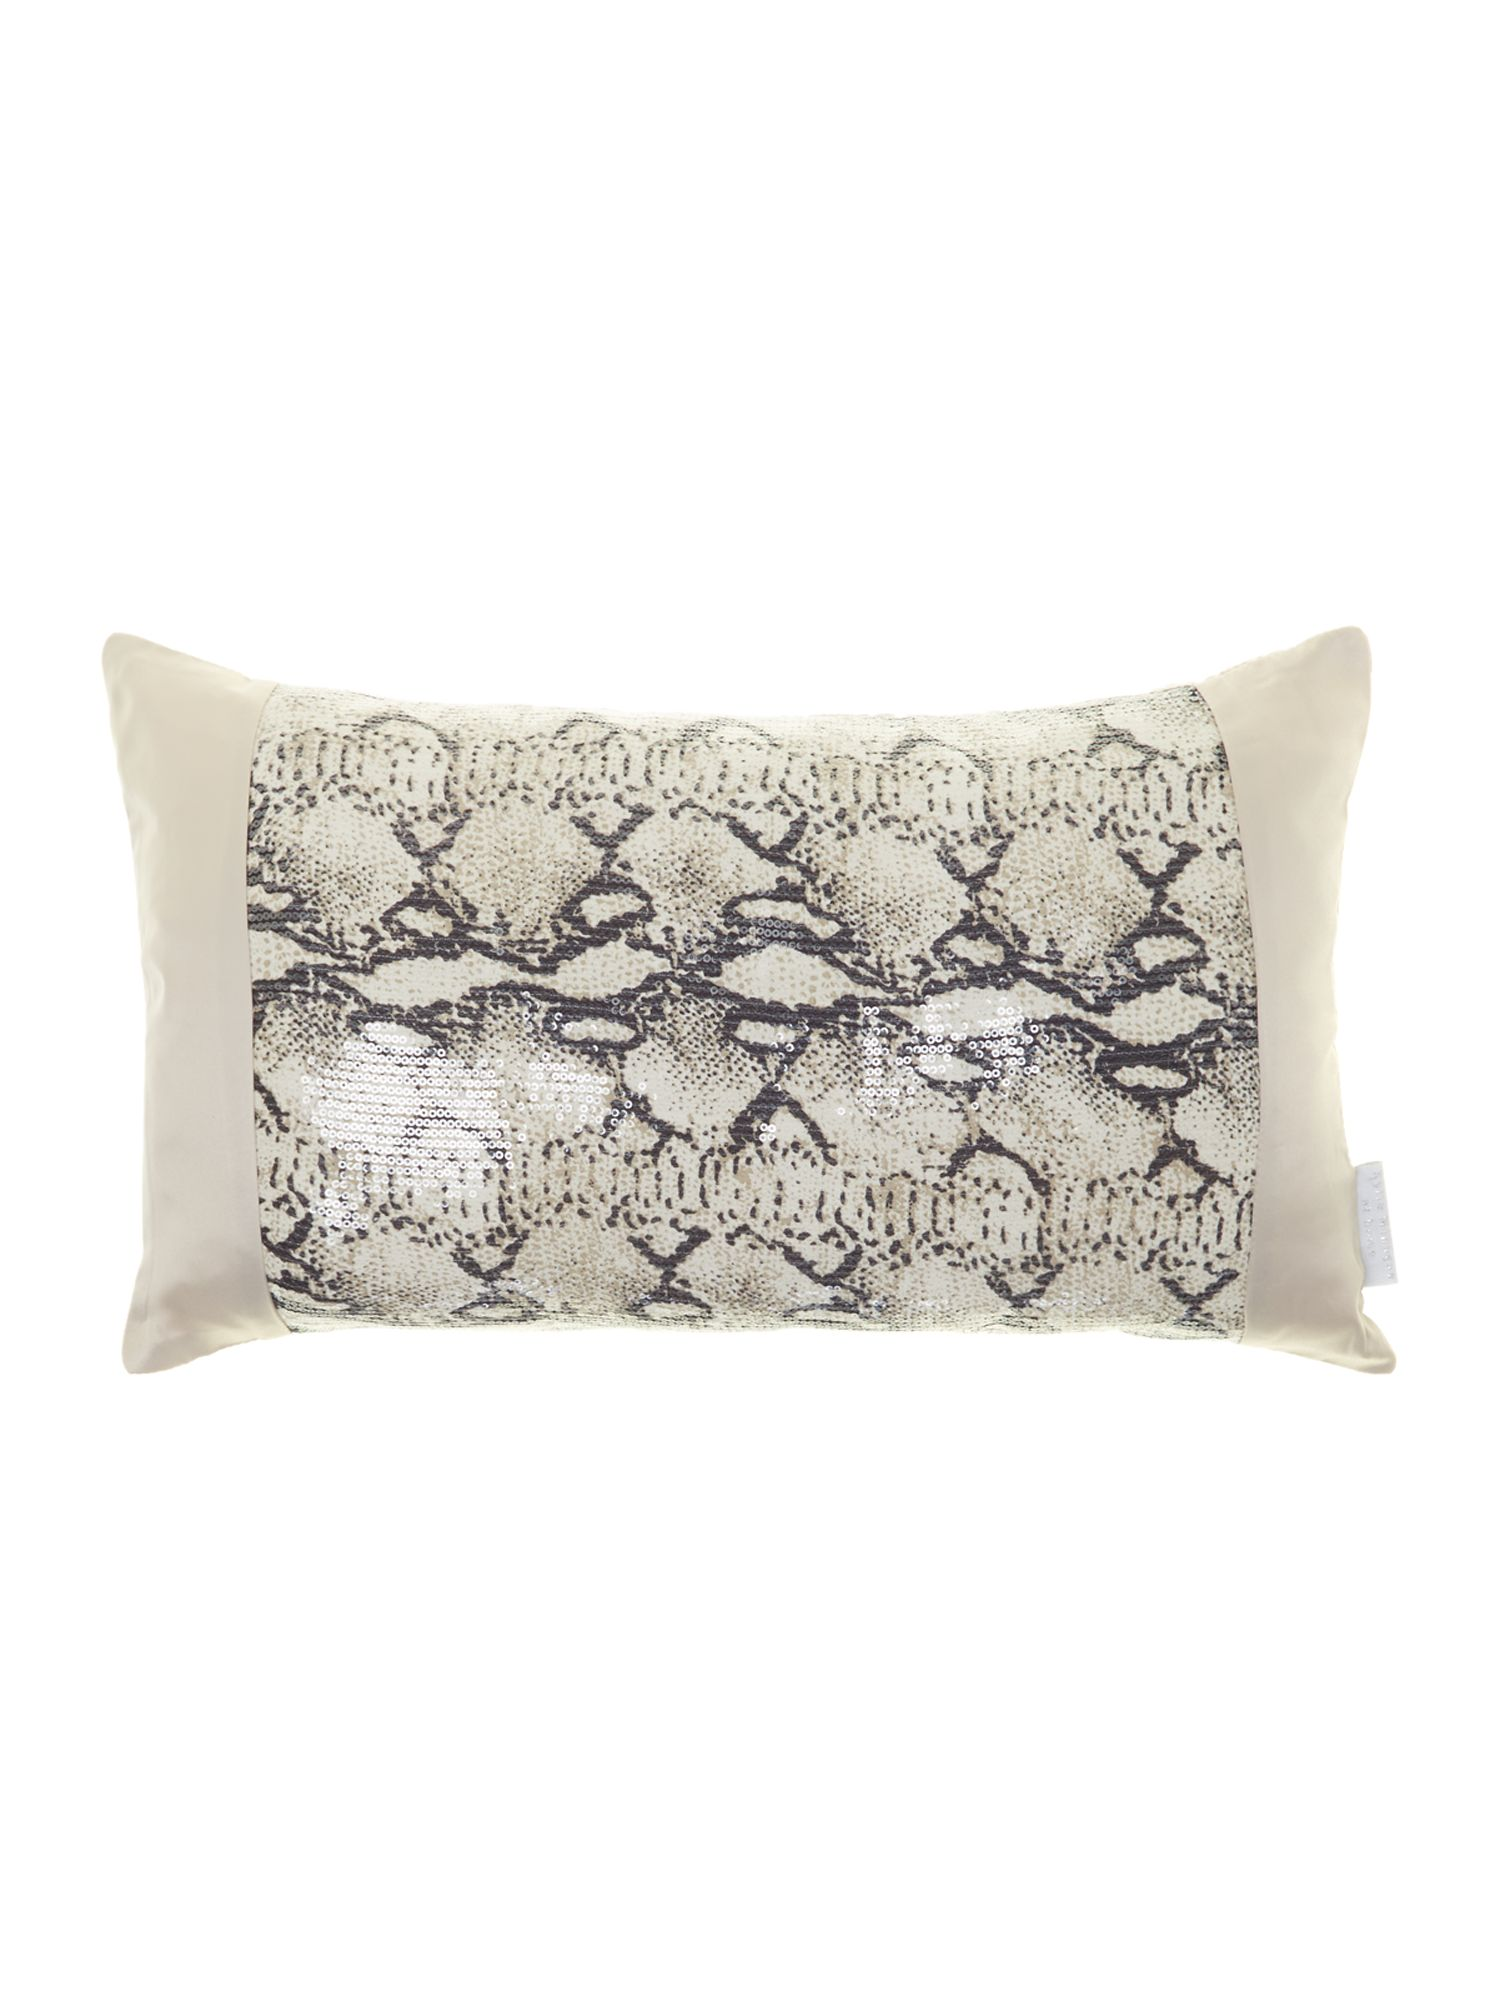 Adira coordinating cushion